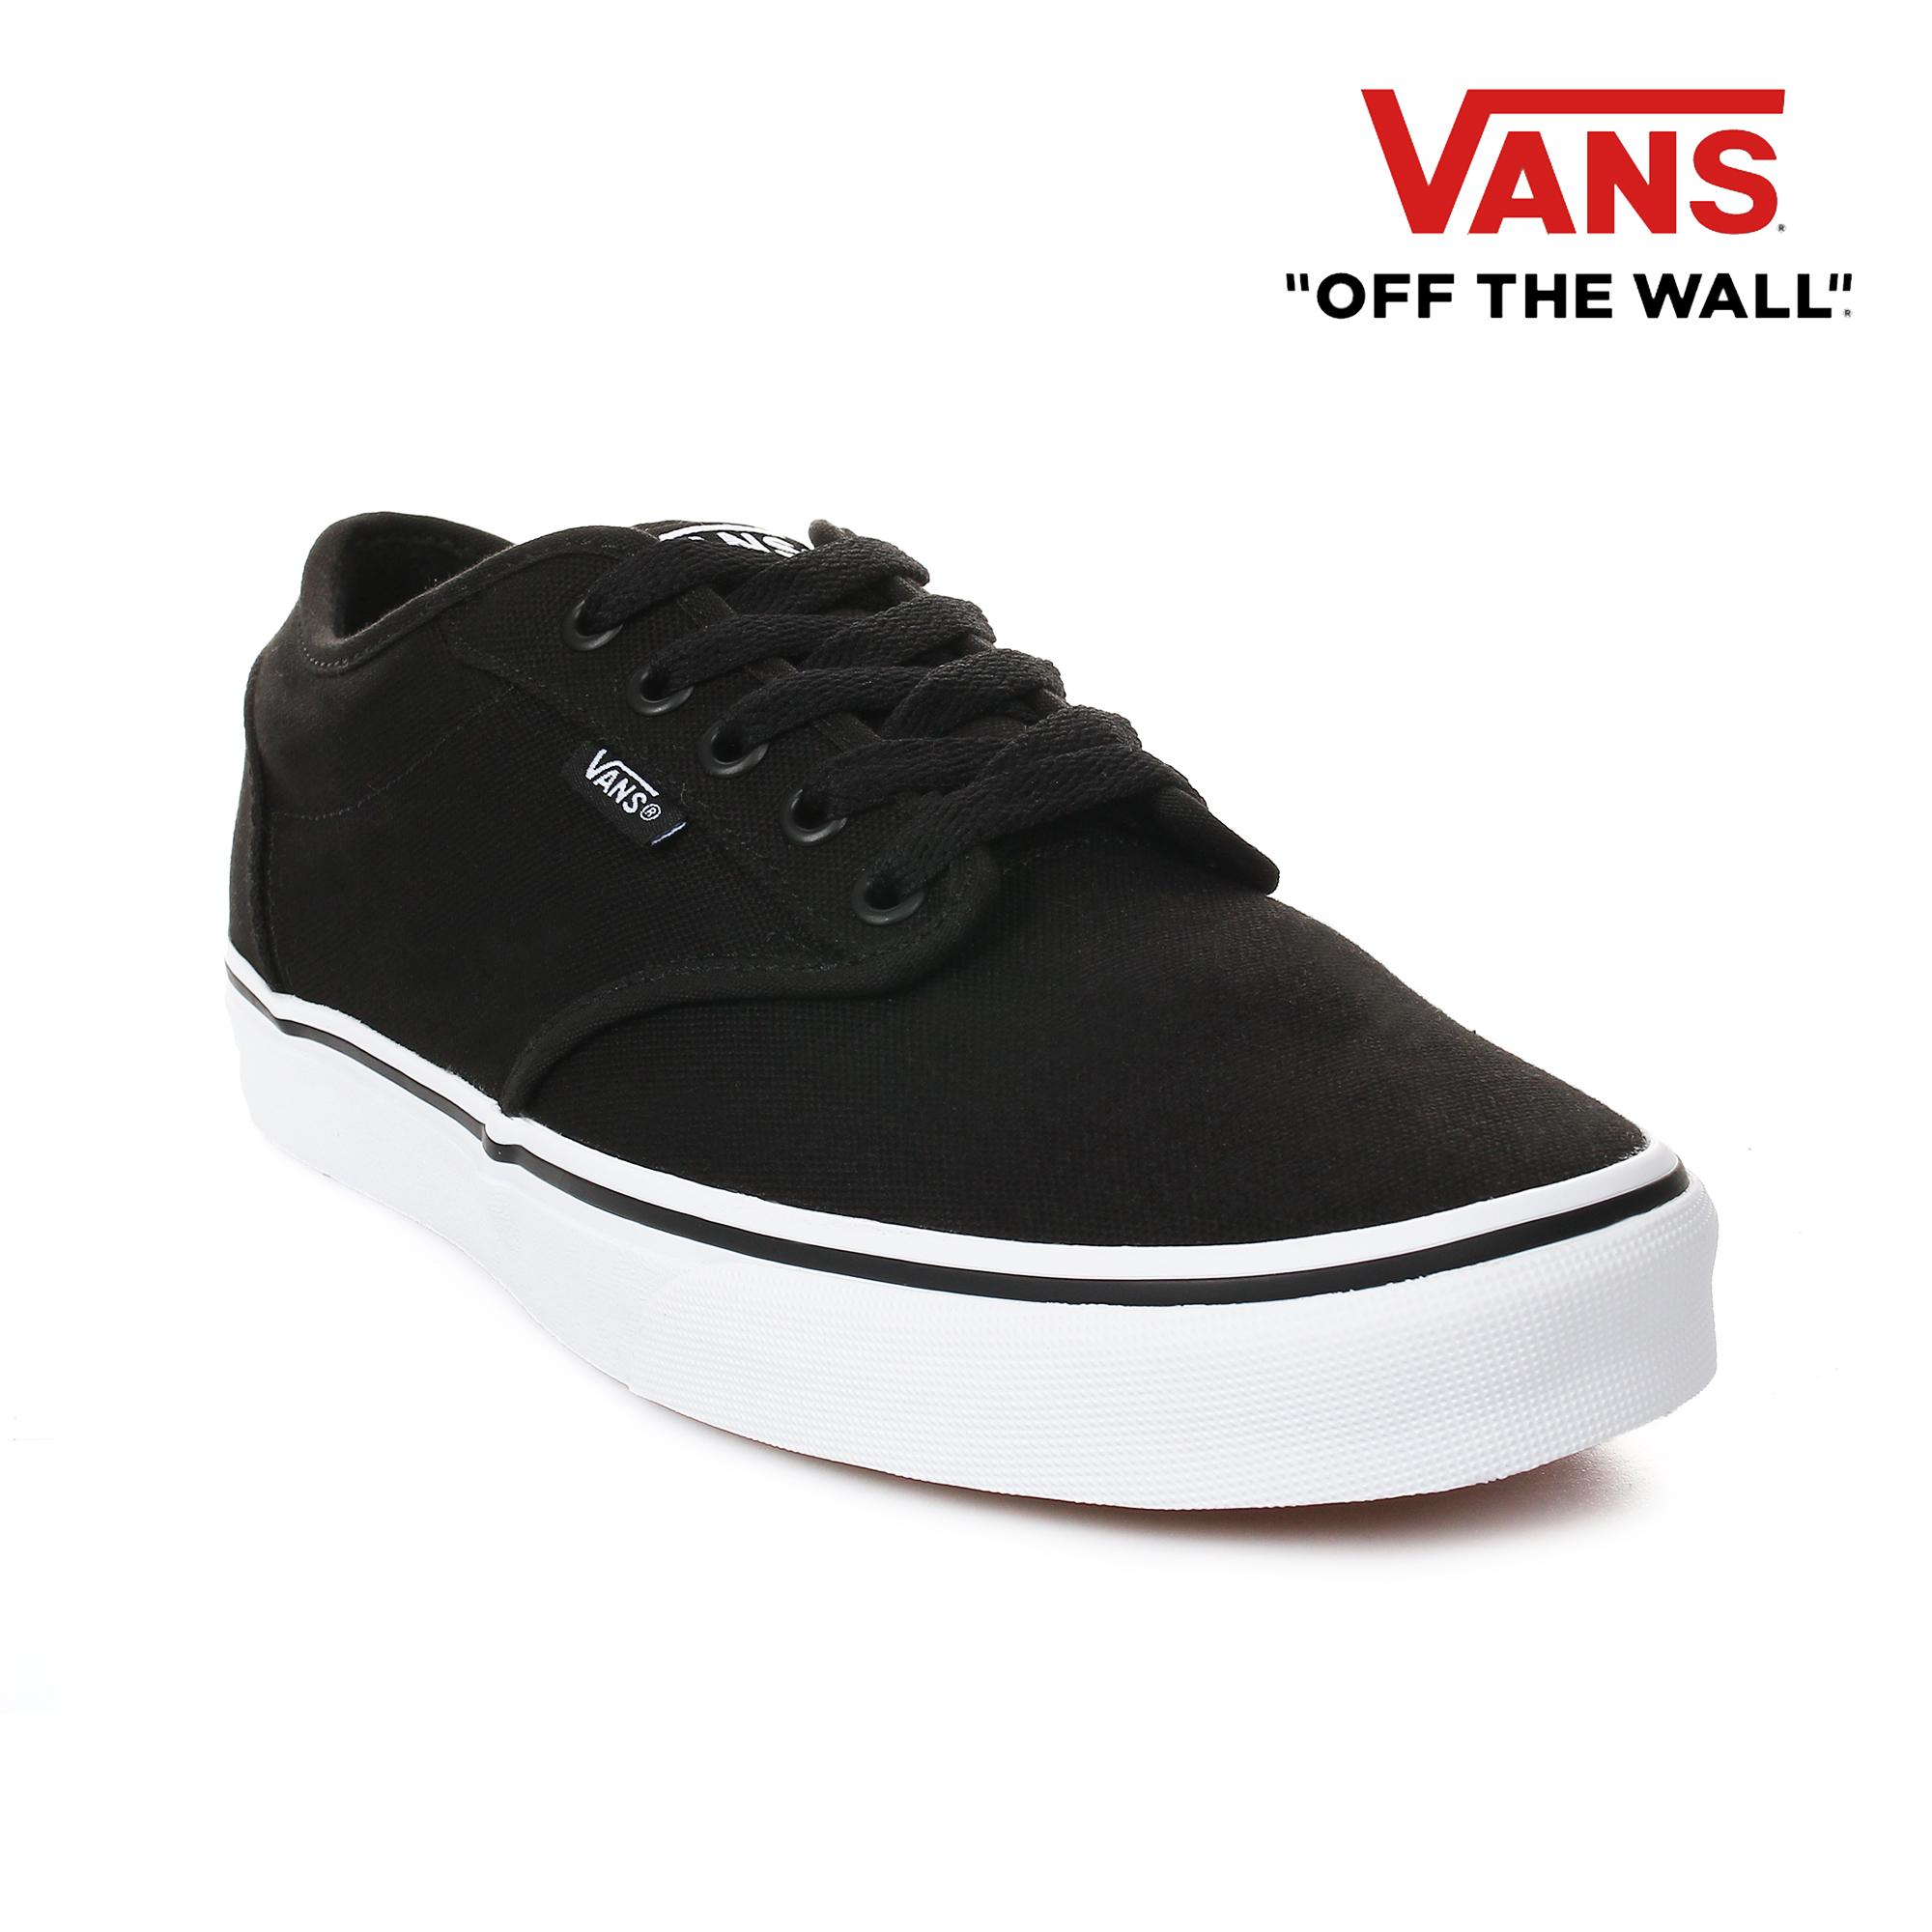 ff571aac309 Vans Shoes for Men Philippines - Vans Men s Shoes for sale - prices ...